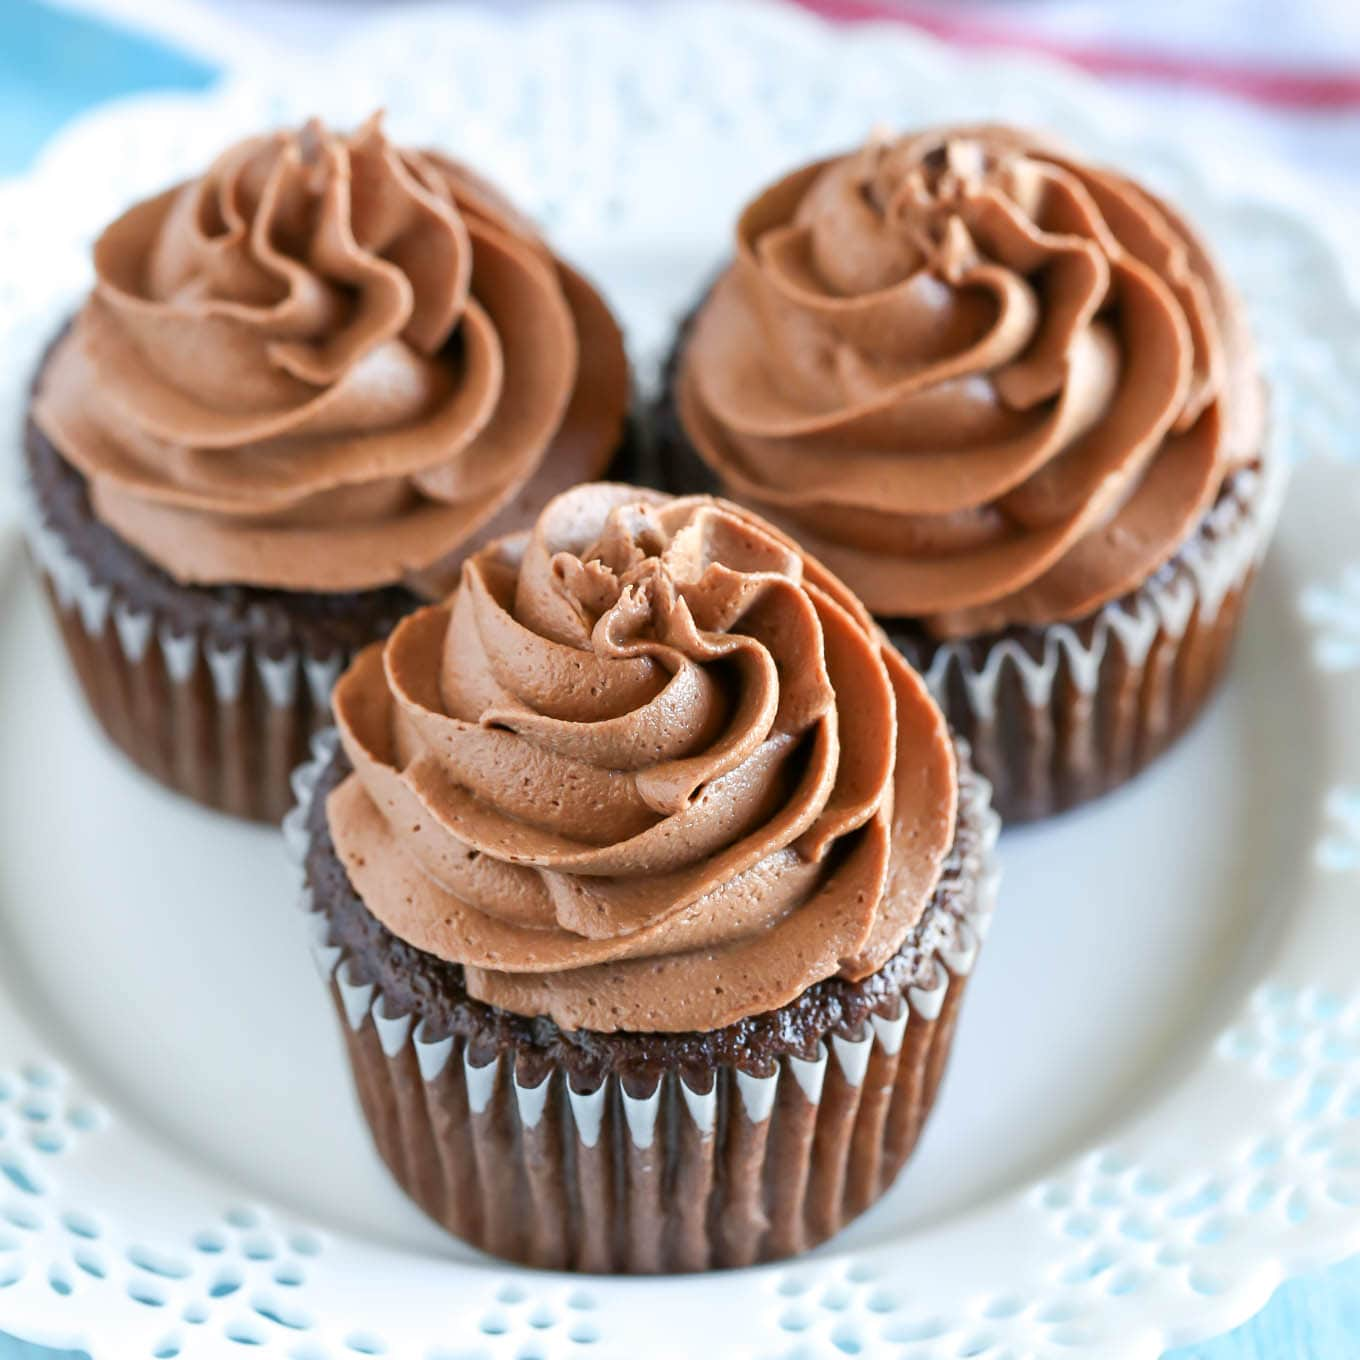 How to make really easy chocolate cupcakes at home without oven